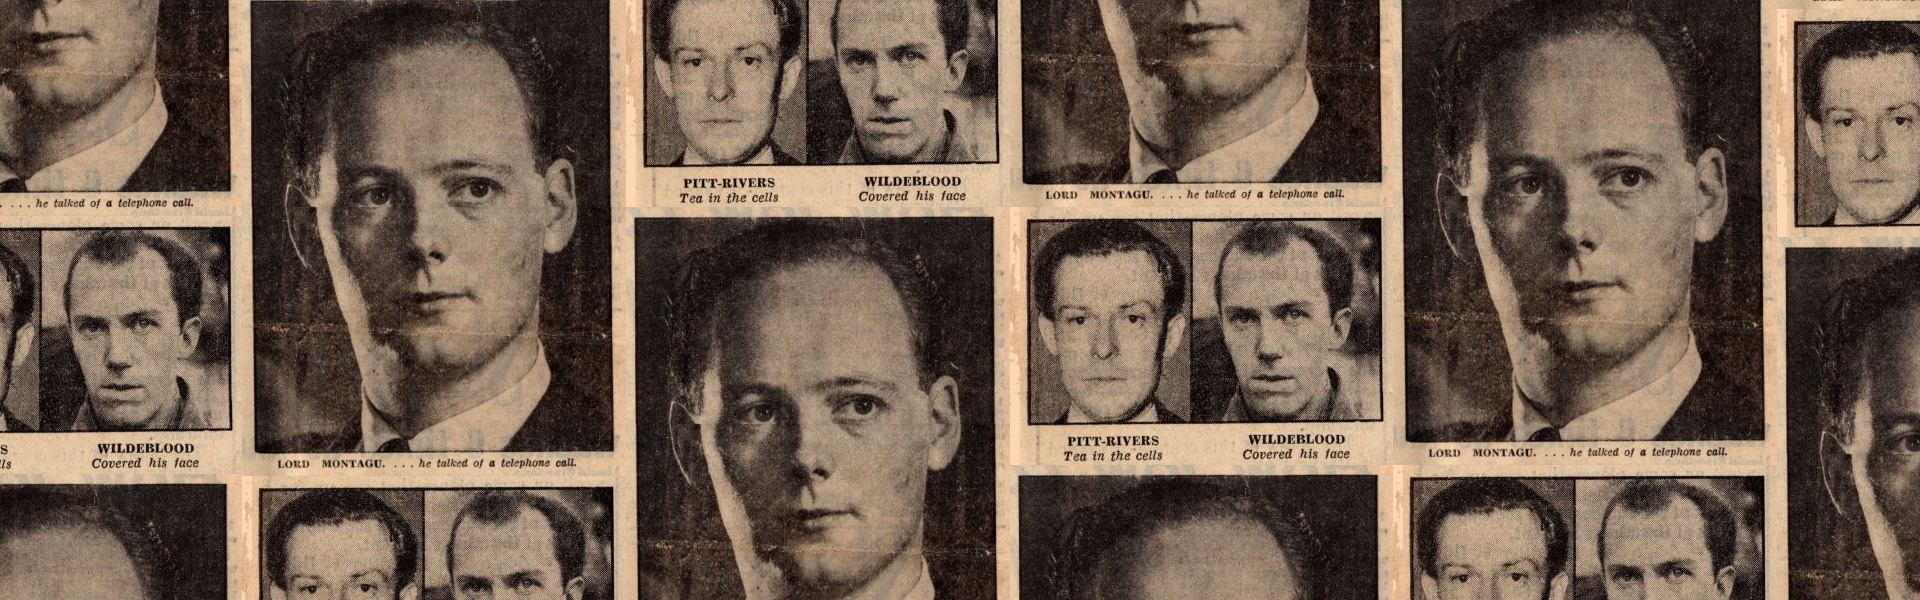 Guilty : Monatagu – 12 months', Daily Mirror (London, UK), 25 March 1954, p1, Papers of GR